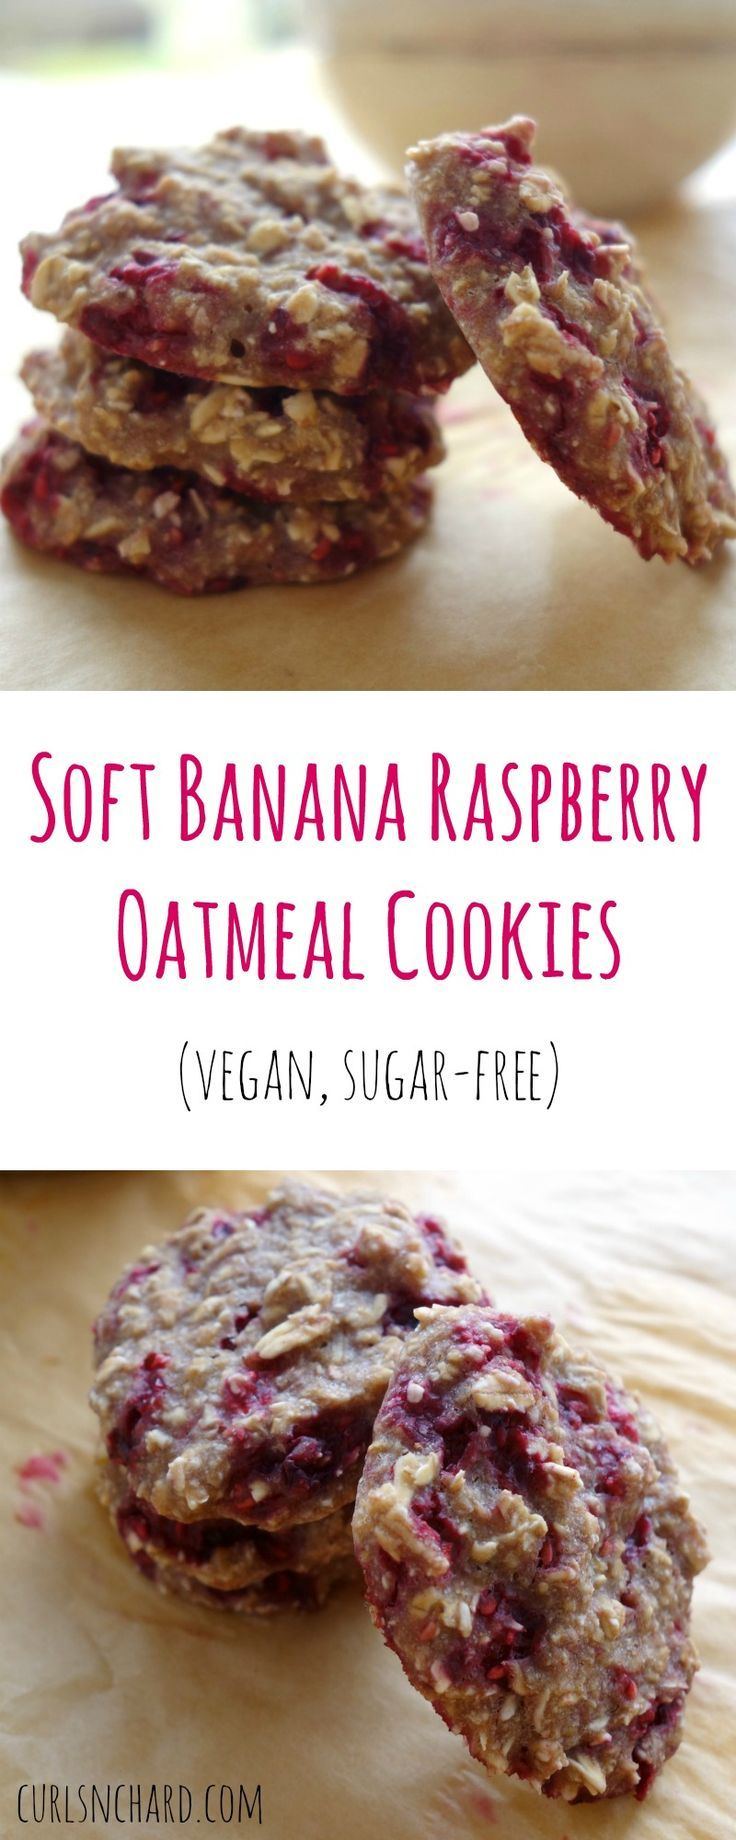 Soft Banana Raspberry Oatmeal Cookies (vegan, sugar-free) | curlsnchard.com